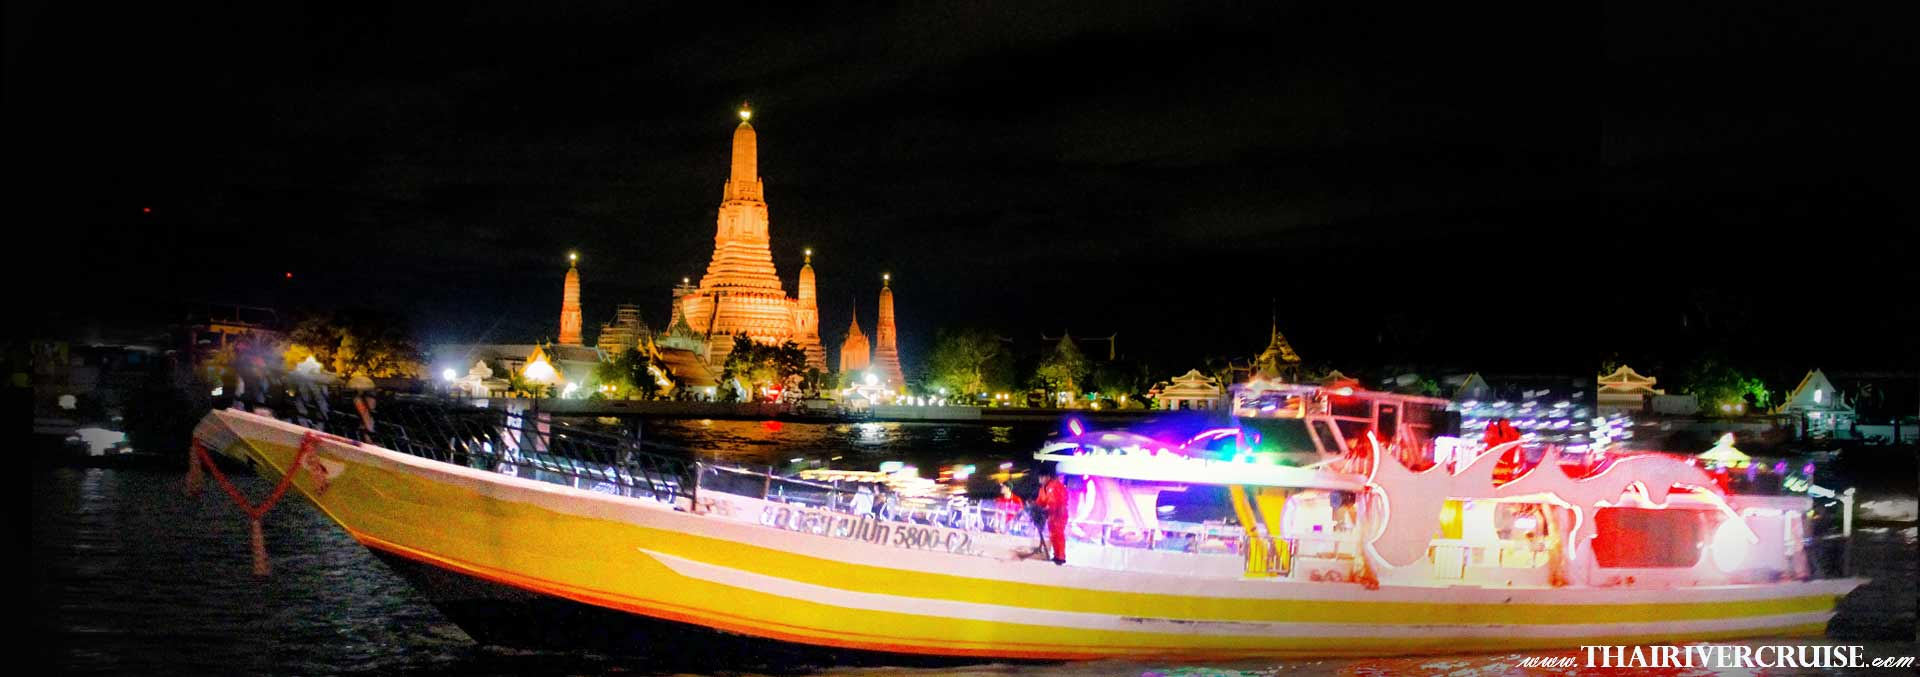 Yod Siam Cruise, Best cocktails Chao Phraya river Cruise Yod Siam Boat sunset cruise cocktail Bangkok & night river Cruise including beer, soft drink, price ticket discount booking offer low price promotion